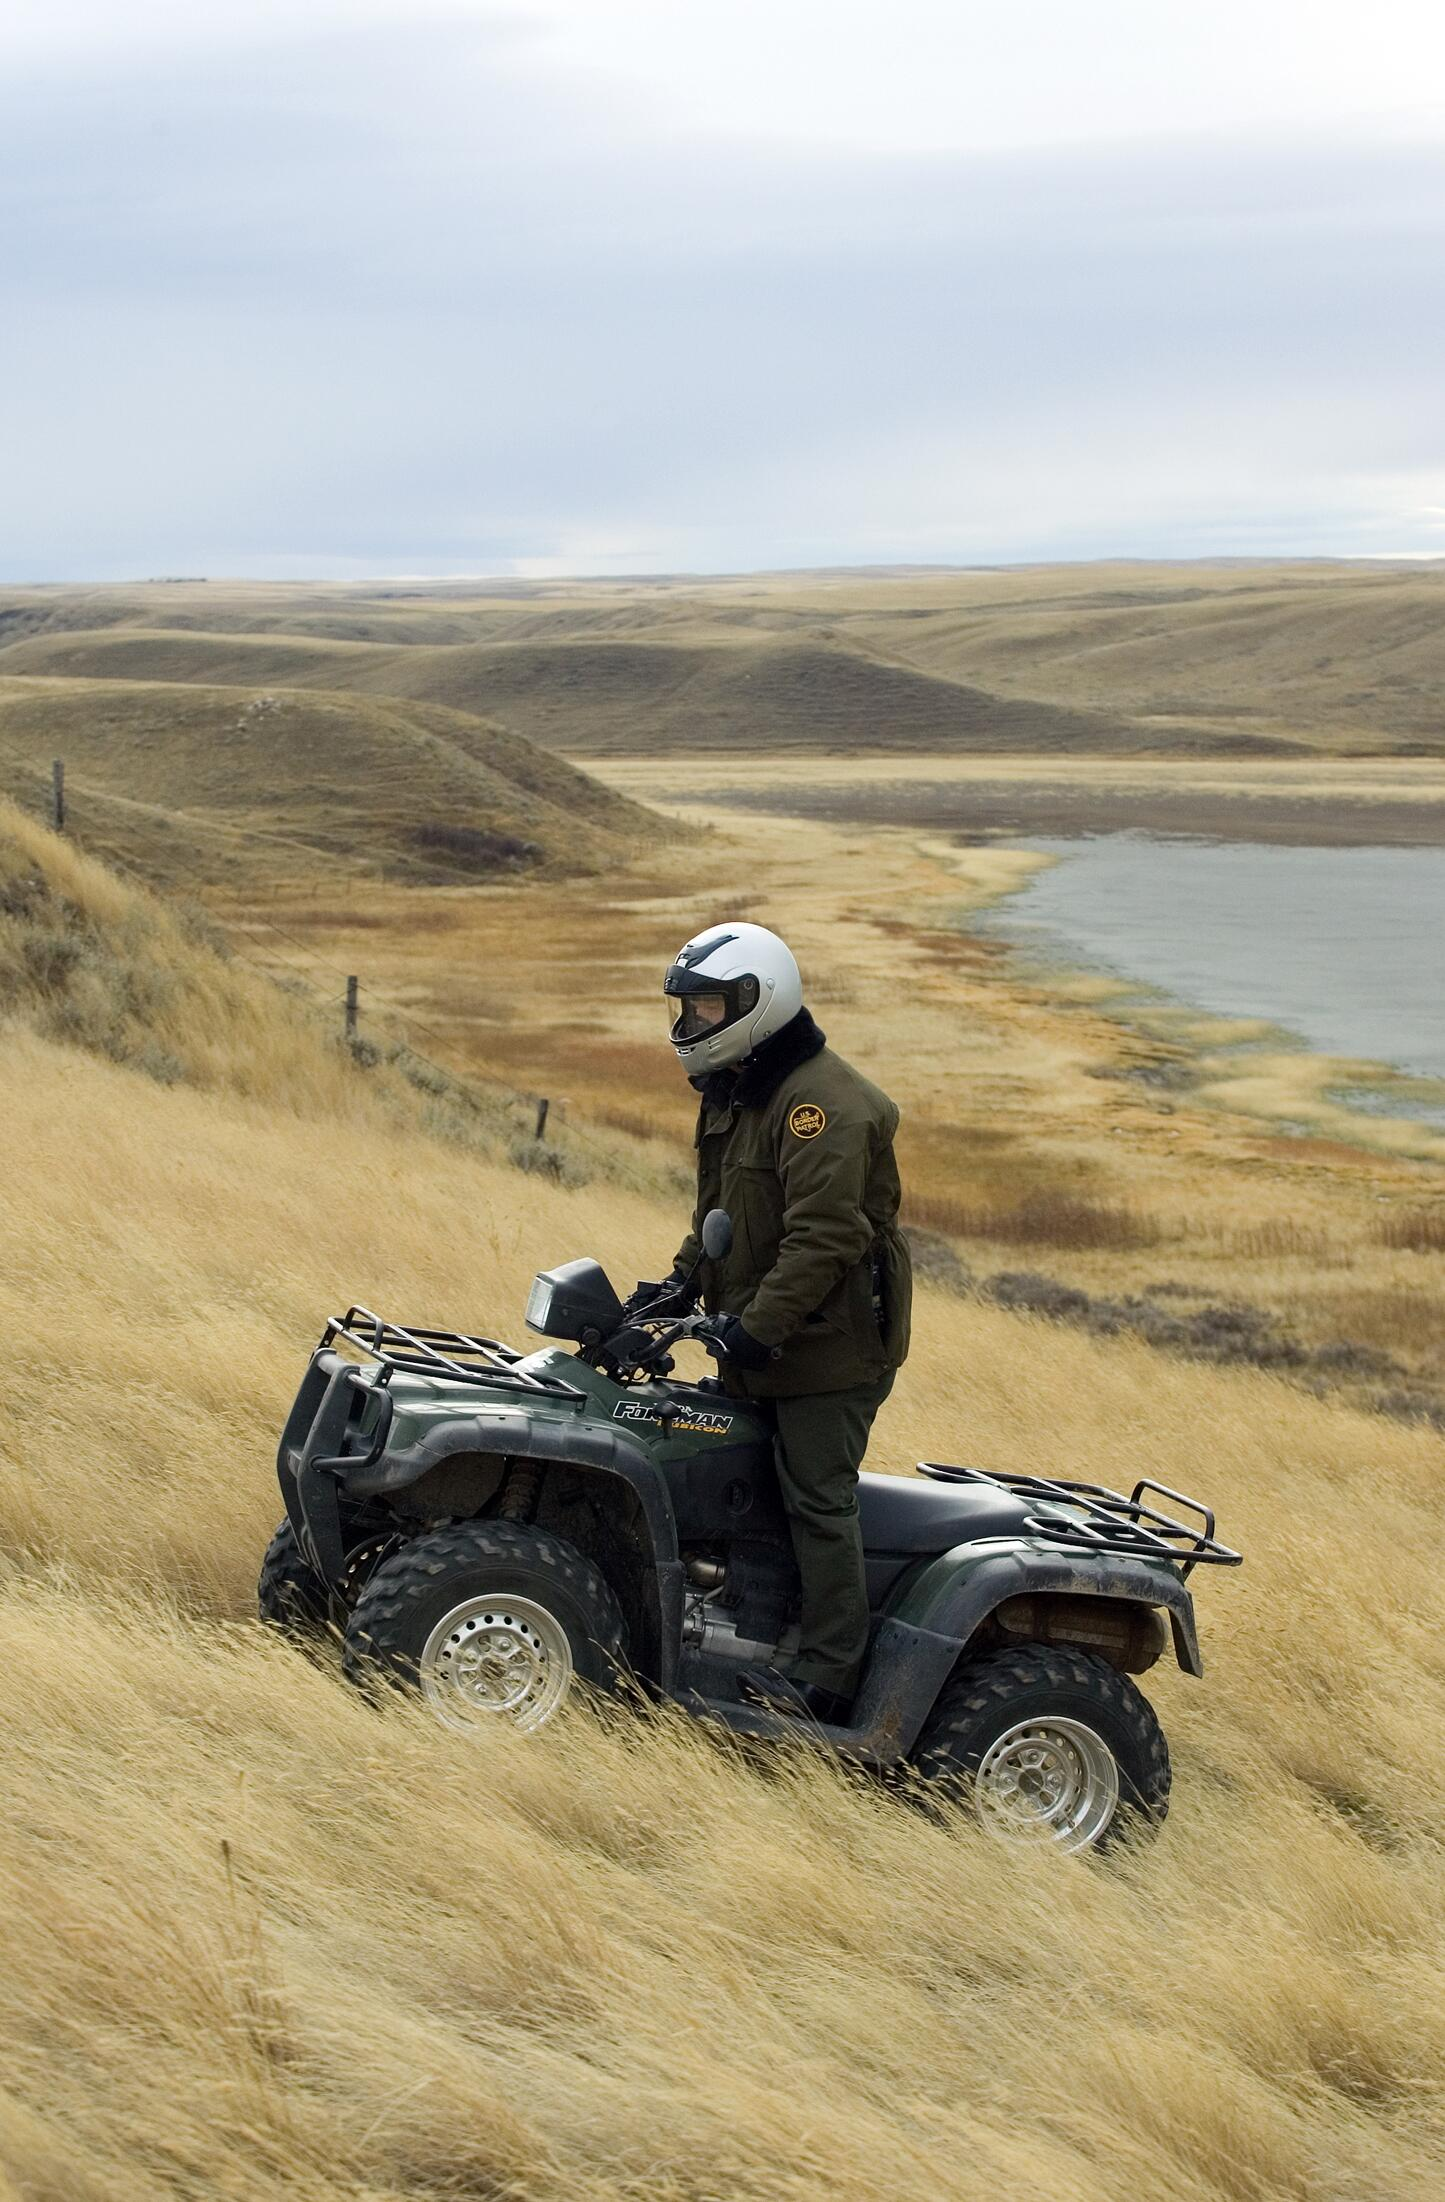 Border Patrol agent uses All Terrain Vehicle to conduct routine patrols near the US/Canadian border near Sweet Grass Montana.